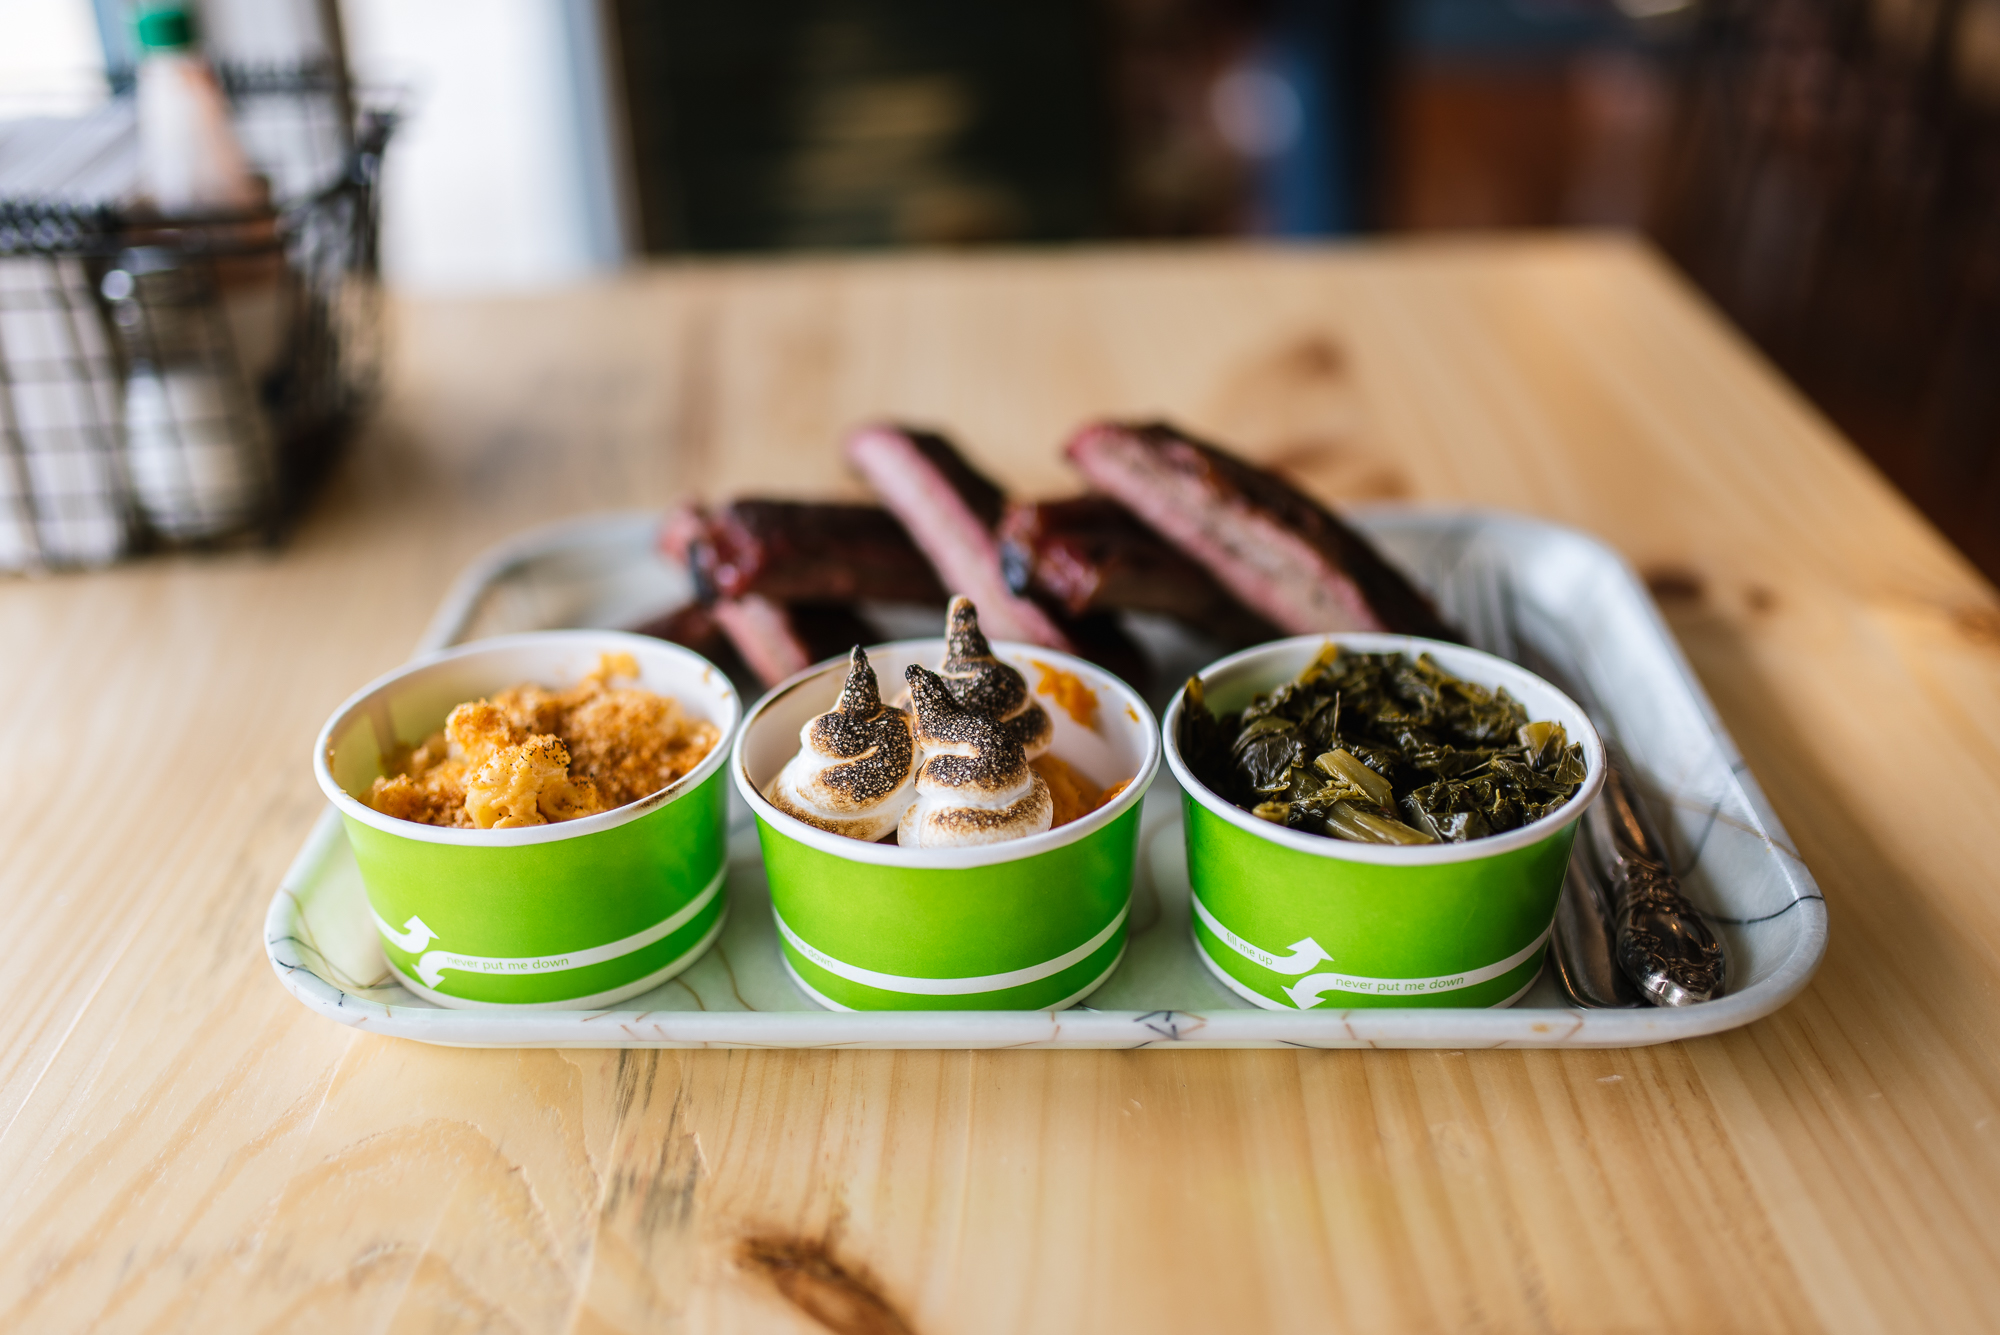 Assorted sides - mac & cheese, sweet potatoes, braised greens